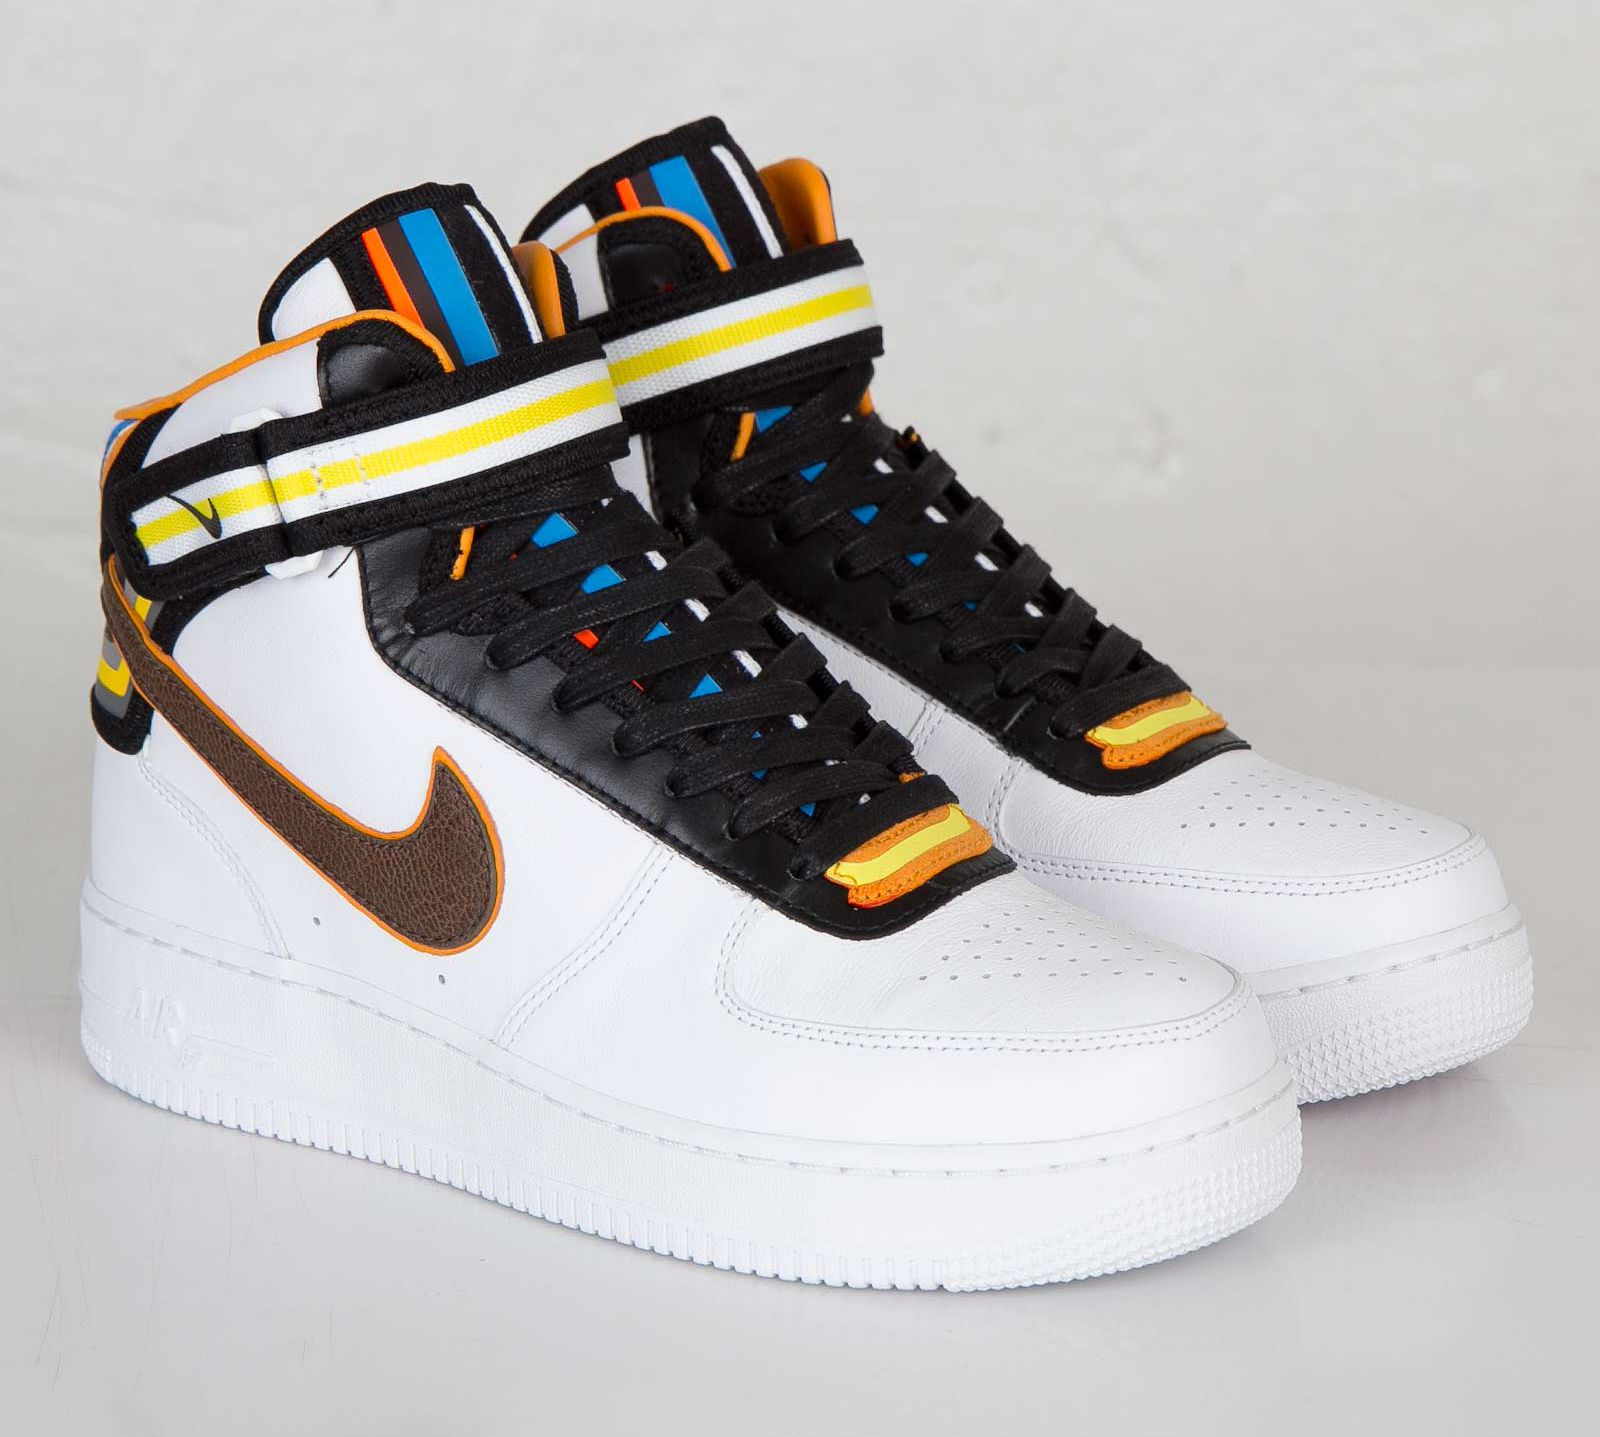 wholesale dealer 22cab a3a7e ... Meet Air Force 1 Riccardo Tisci, basketball shoes tat become a cultural  statement.